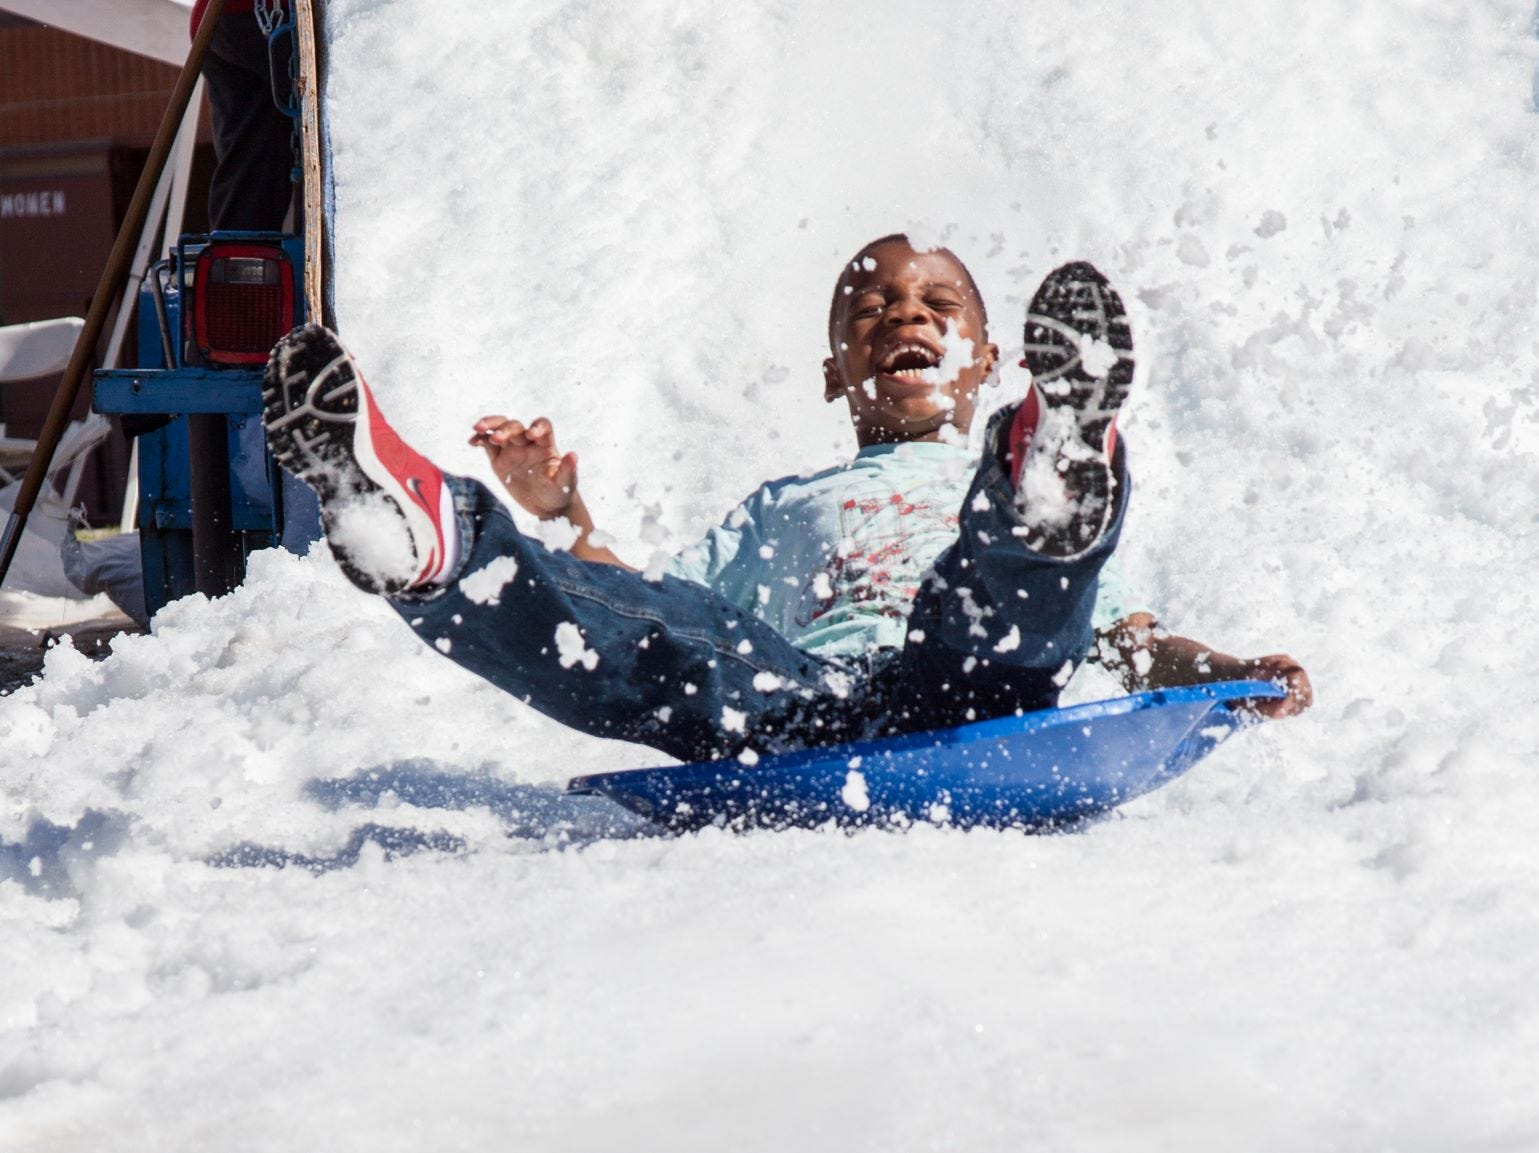 The Great Canadian Picnic offers interactive activities for families, such as a snow slide.